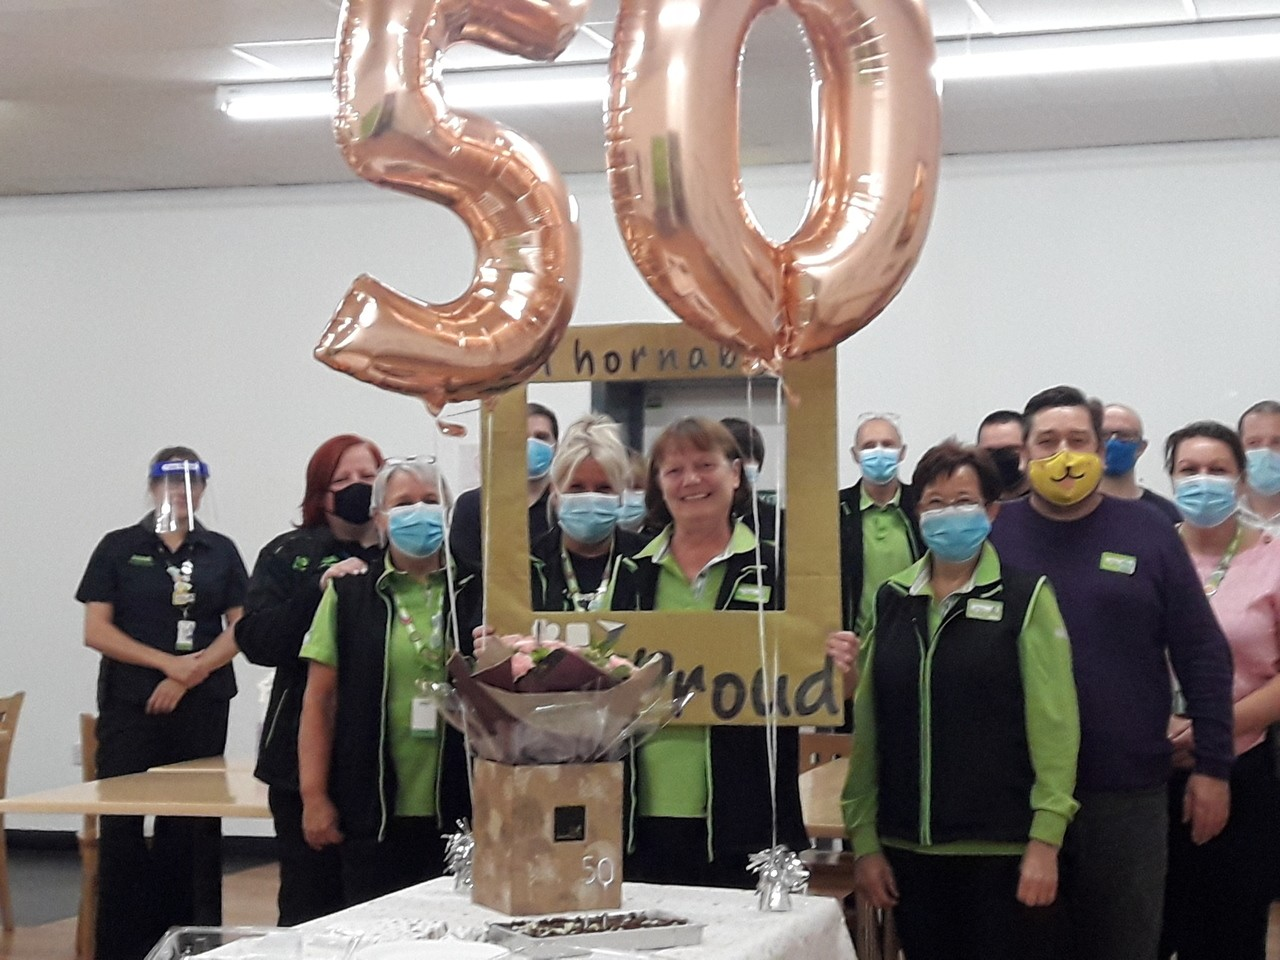 Asda Thornaby colleague Linda celebrates 50 years' service | Asda Thornaby